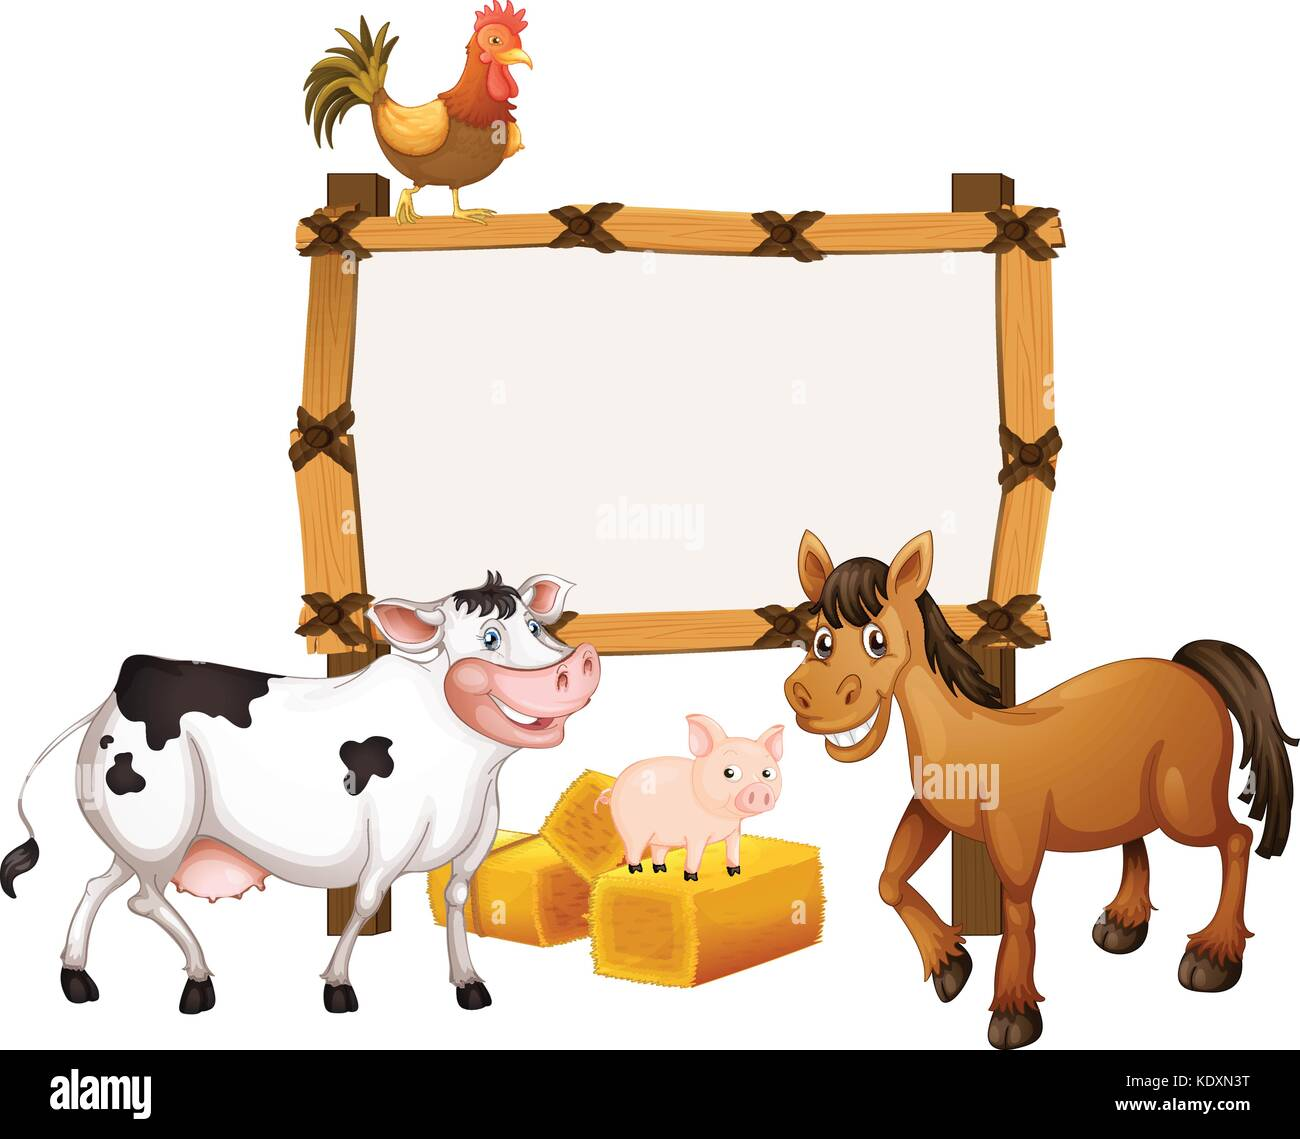 Frame template with animals in the farm illustration Stock Vector ...